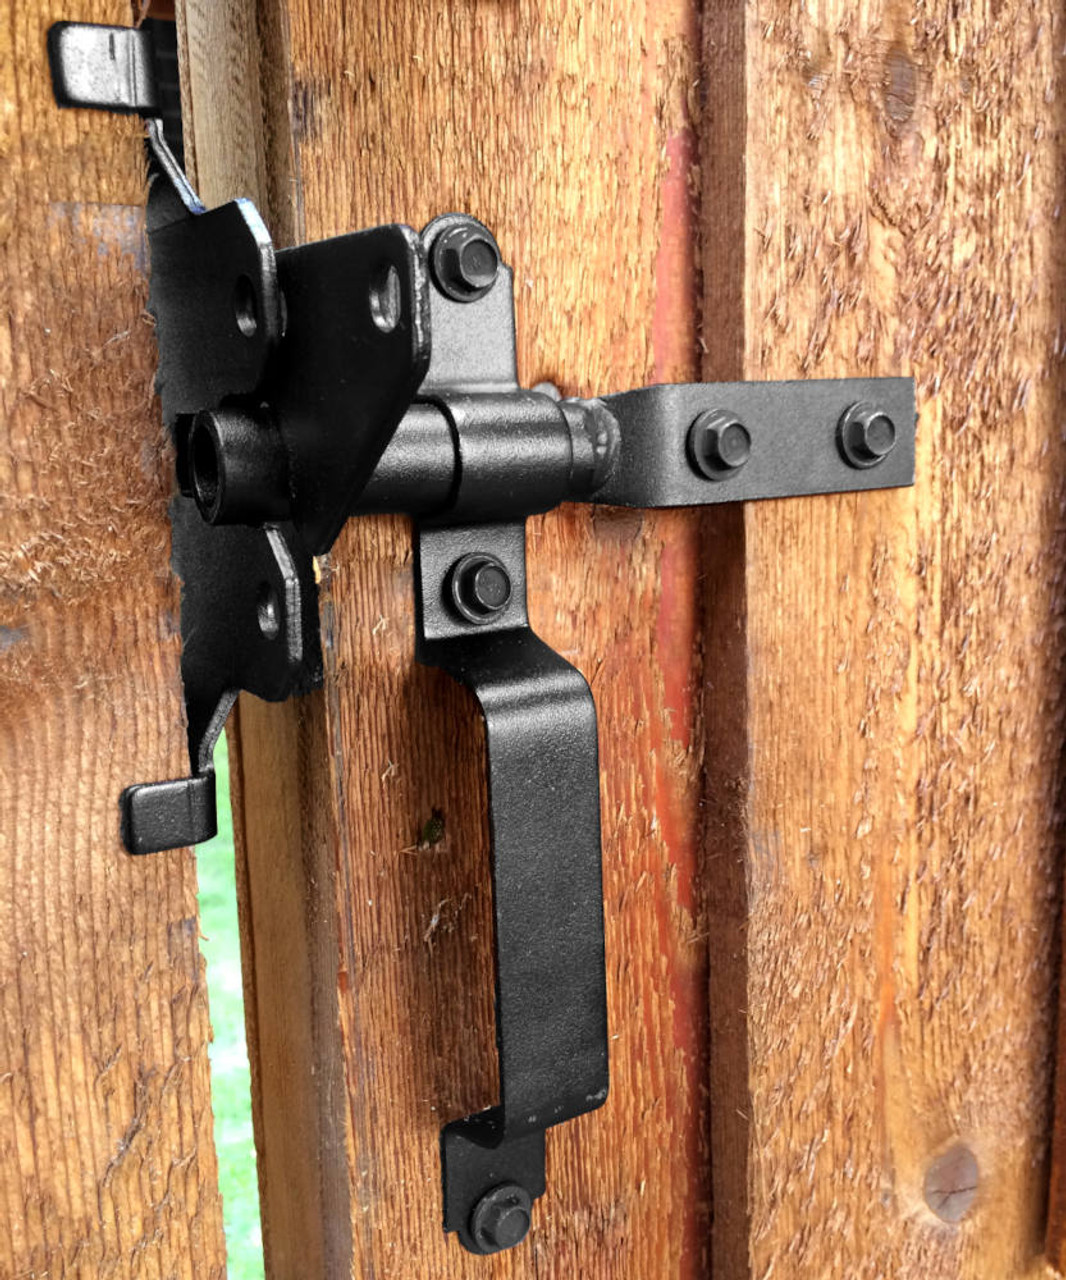 OZCO OWT Wood Gate Latch with Handle on Wood Gate.